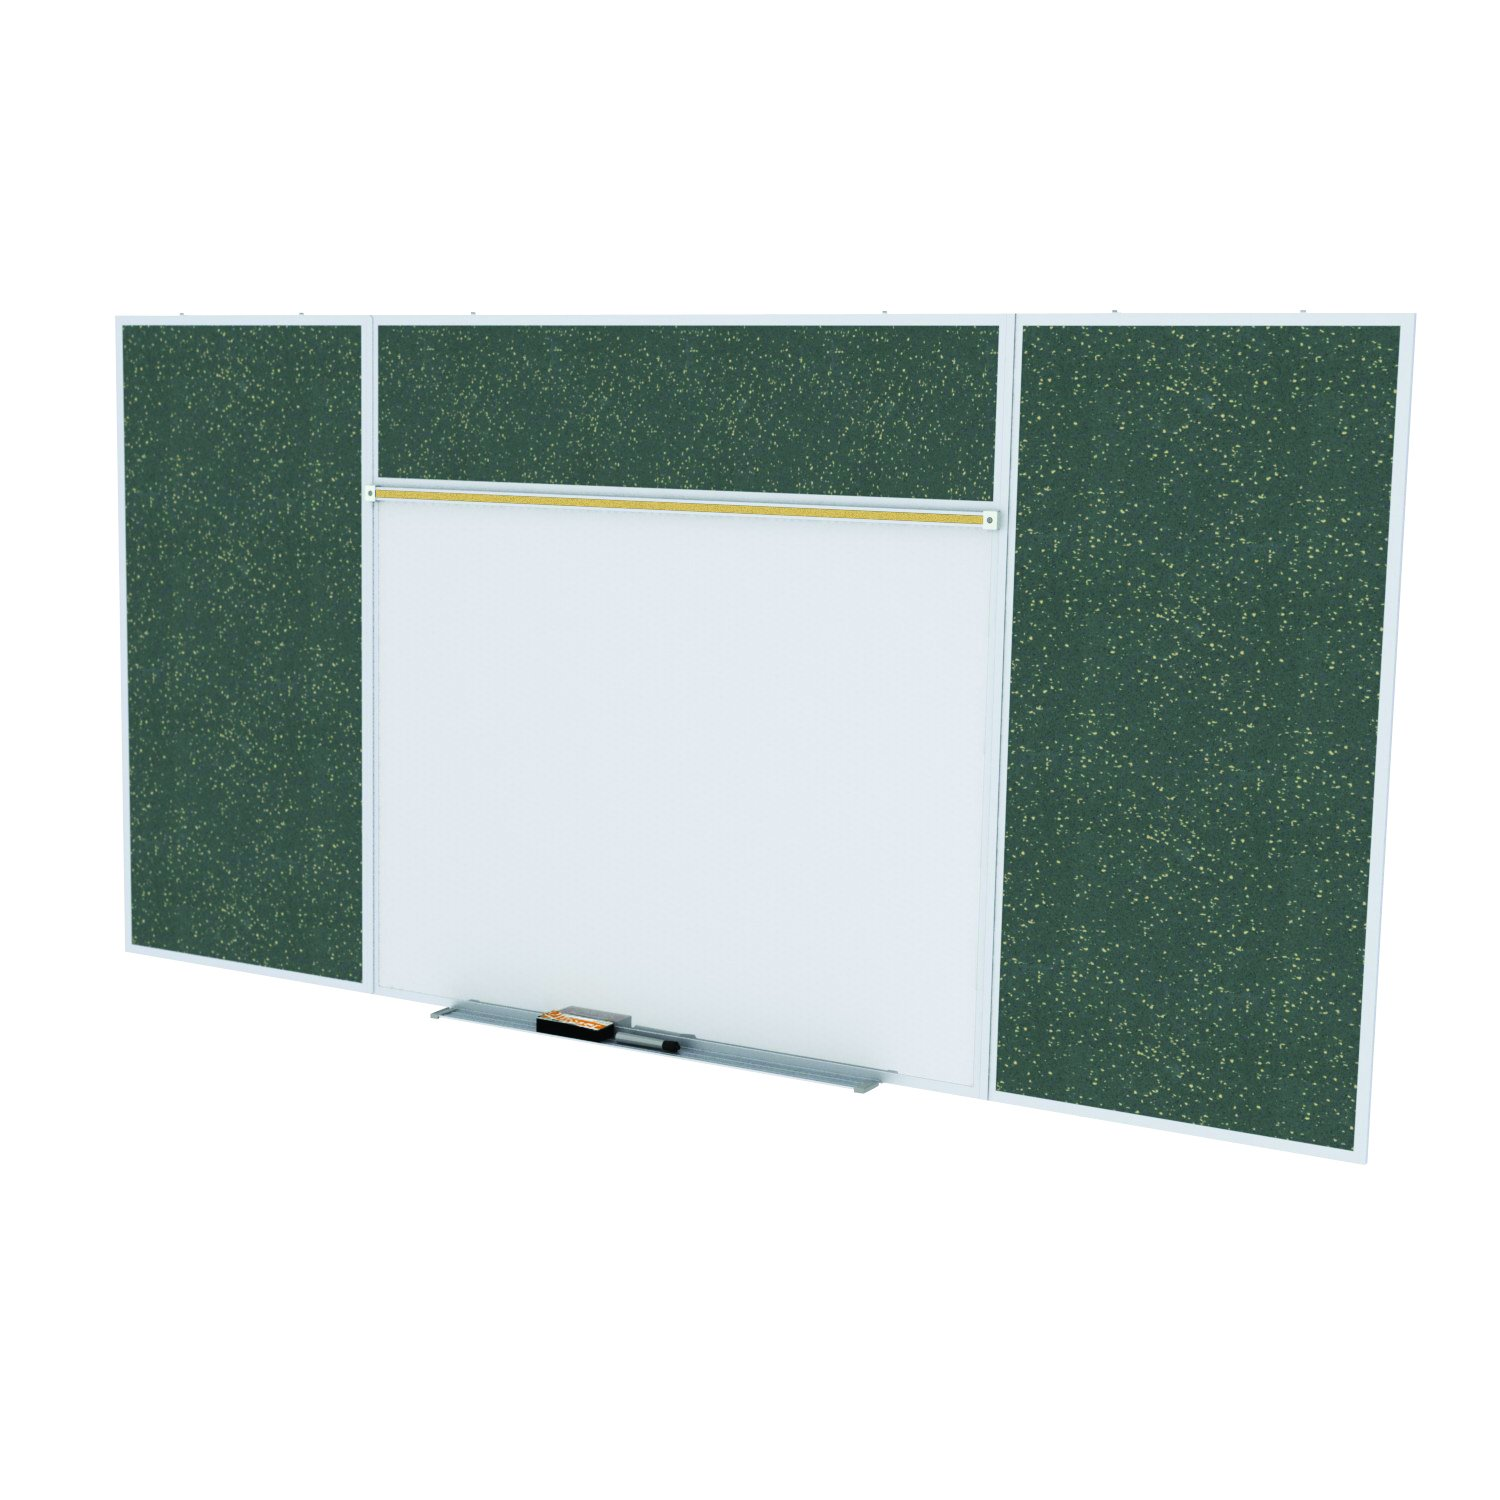 Ghent Style E 4 x 8 Feet Combination Board, Porcelain Magnetic Whiteboard and Recycled Rubber Bulletin Board, Tan Speckled , Made in the USA